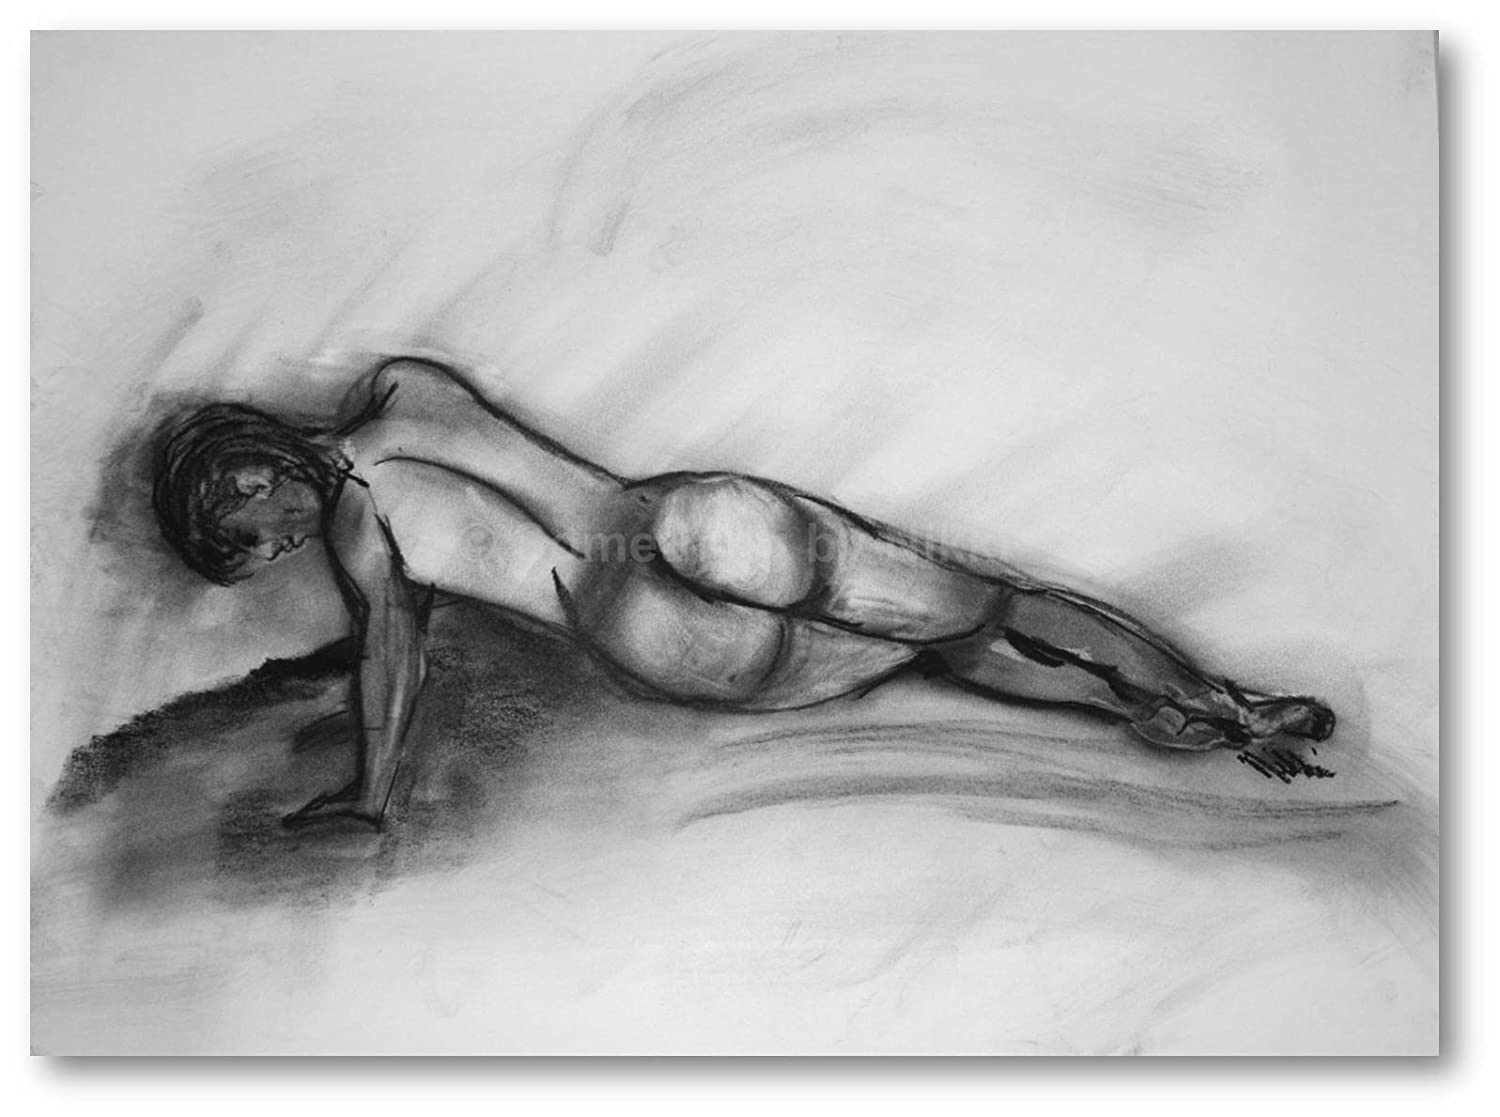 Pencil drawings of naked women